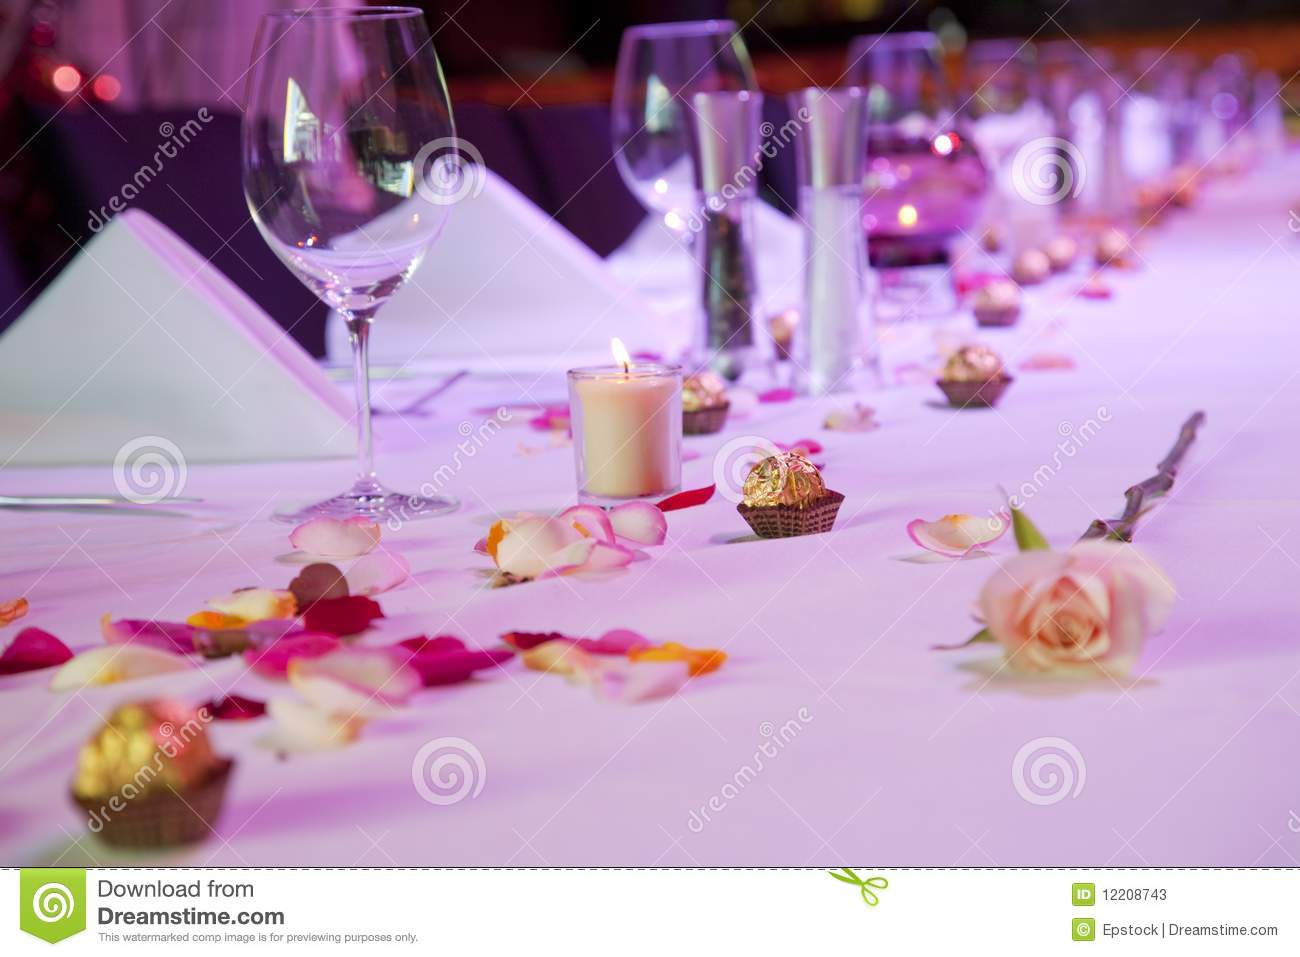 18e171f2bff Dressed Restaurant Table For Special Occasion Stock Image - Image of ...